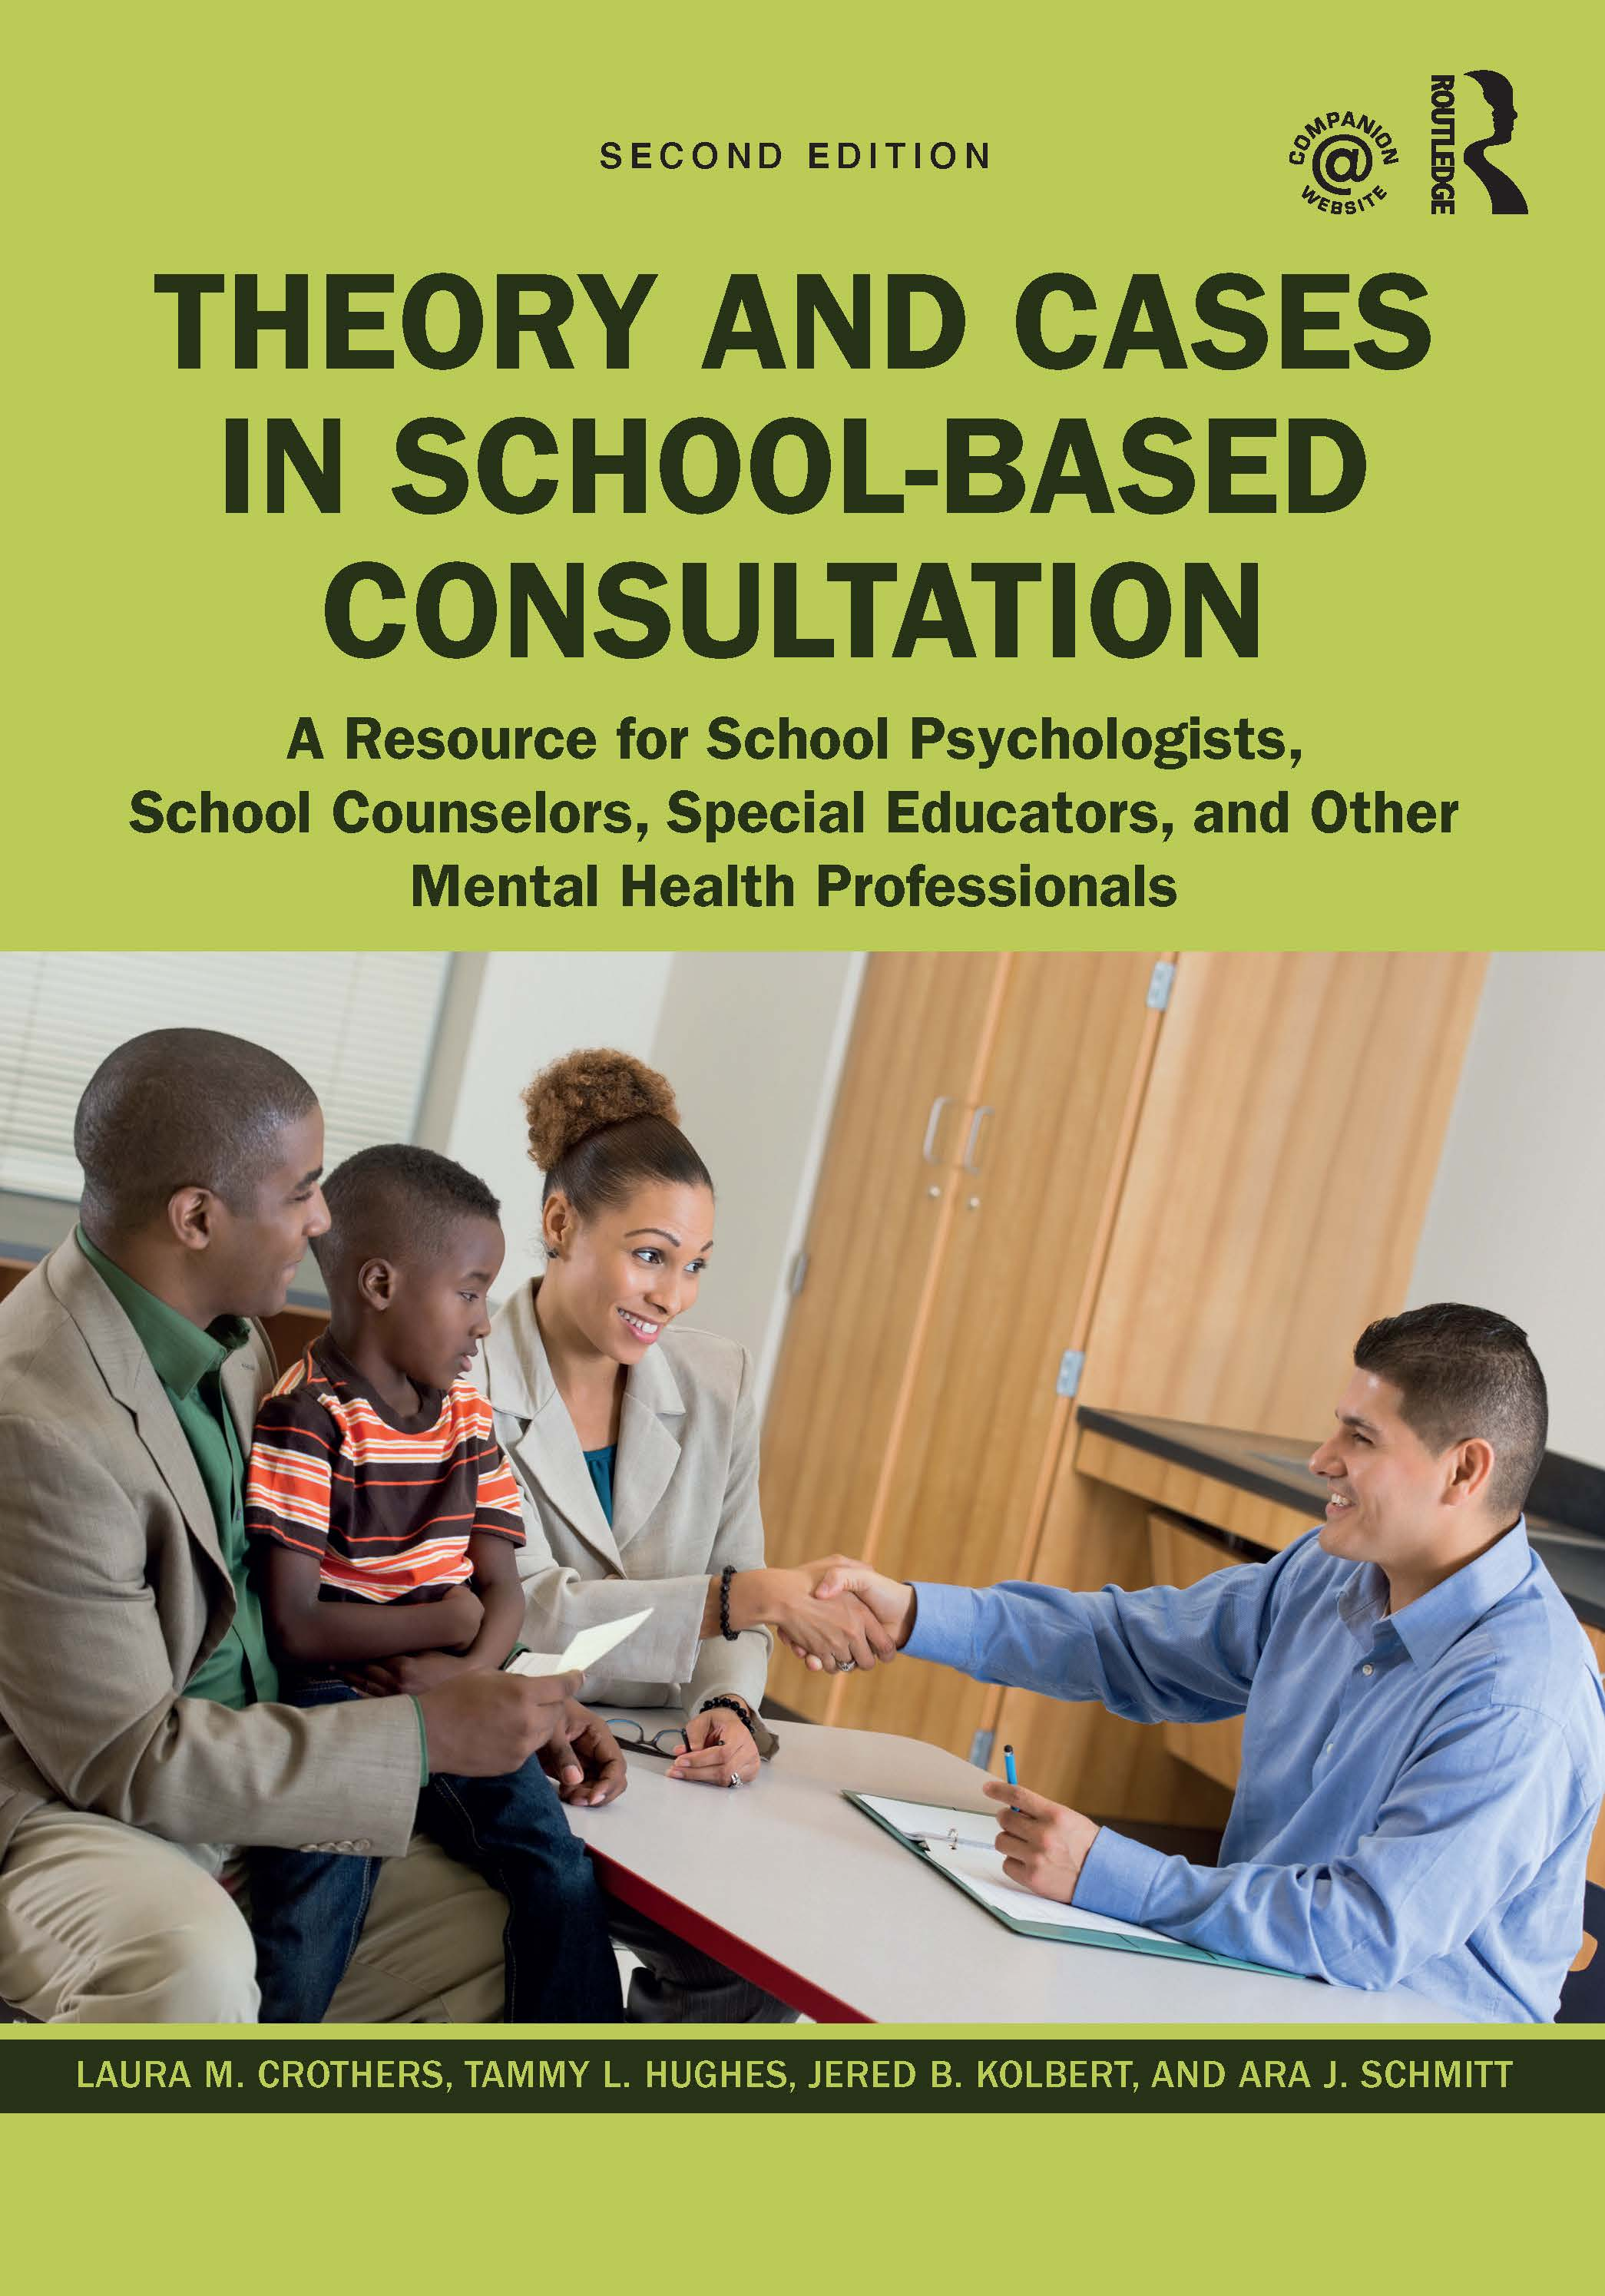 Theory and Cases in School-Based Consultation: A Resource for School Psychologists, School Counselors, Special Educators, and Other Mental Health Professionals, 2nd Edition (Paperback) book cover